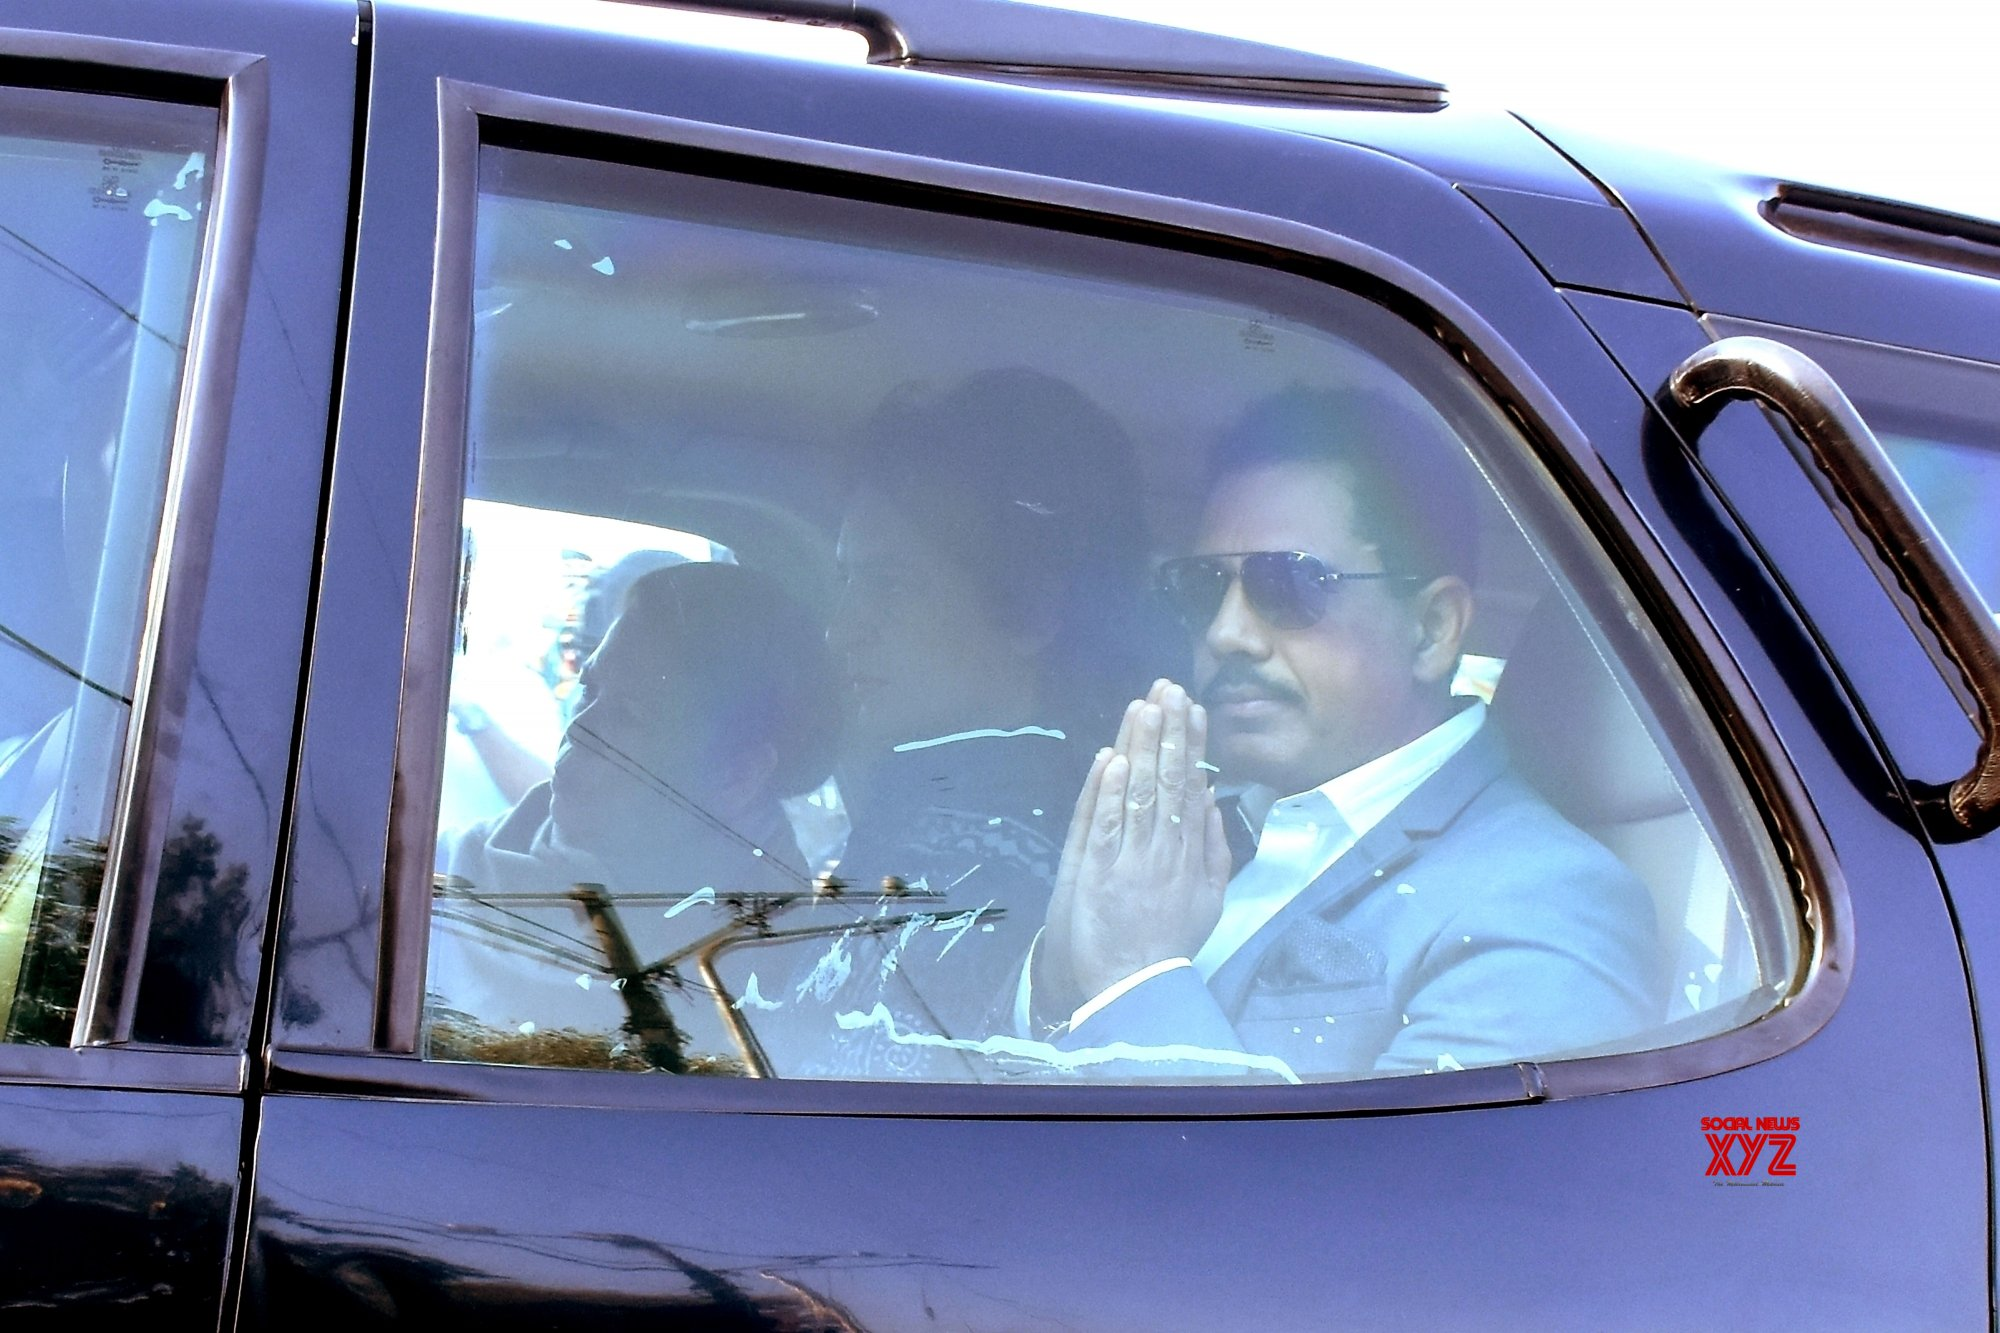 Robert, Maureen Vadra arrives at Jaipur ED office